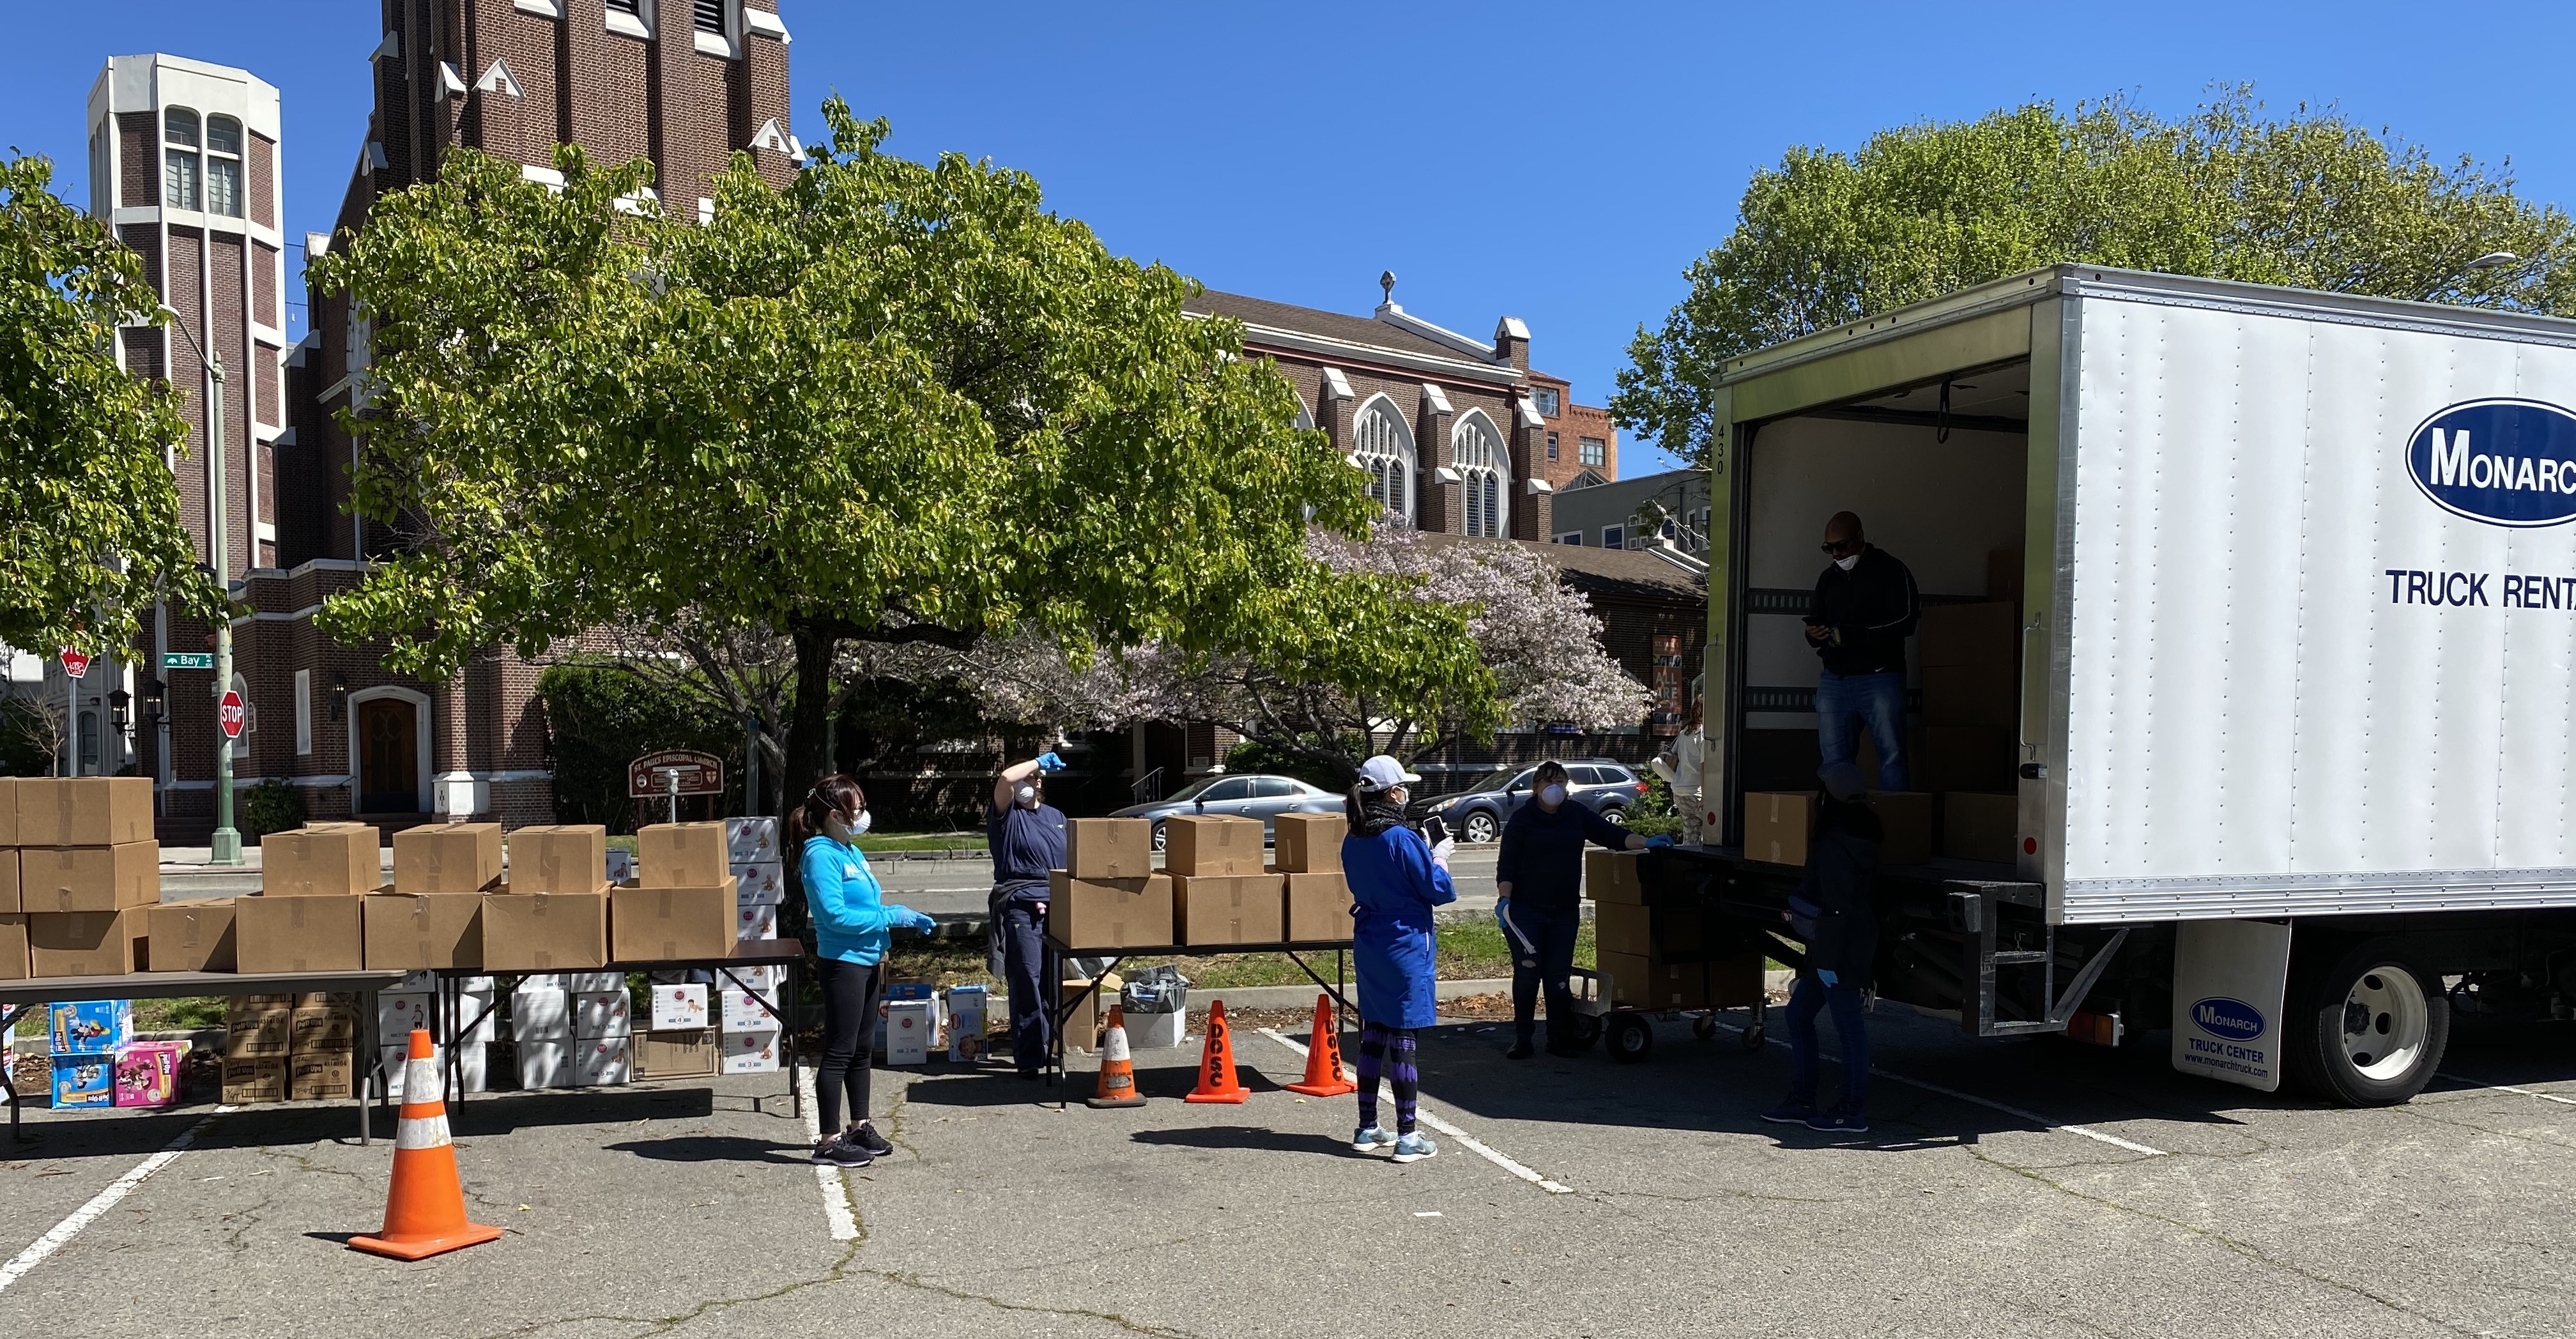 Head Start distributes food, diapers, and educational materials to families.